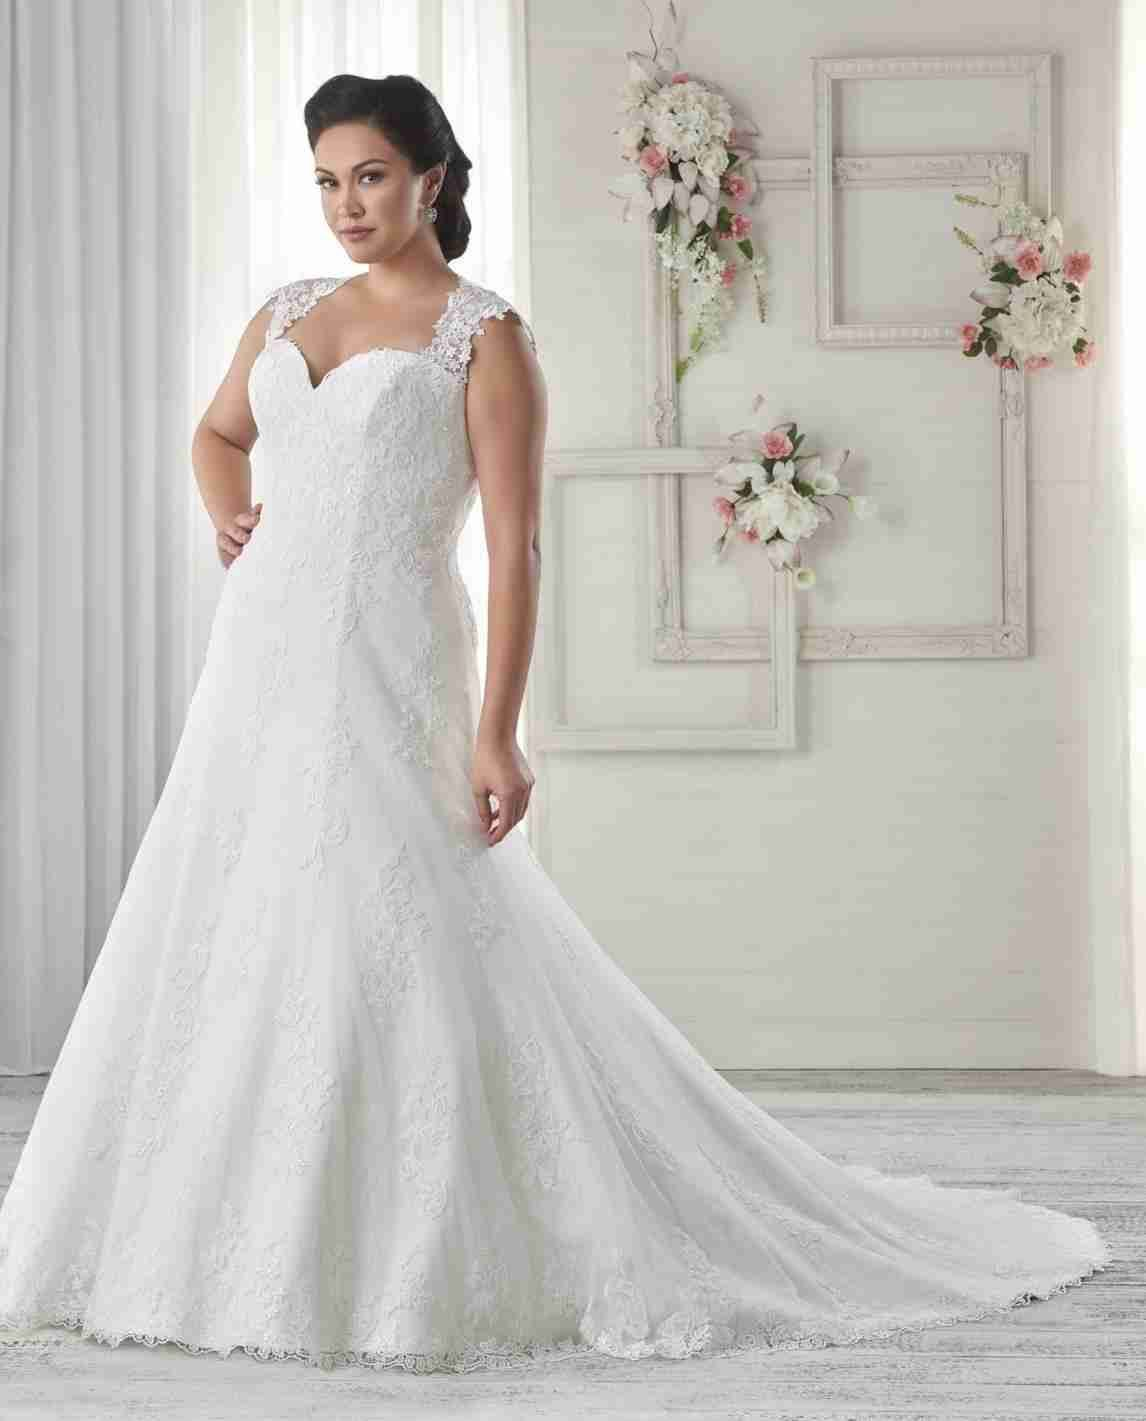 New Post Wedding Dresses Sweetheart Neckline Fit And Flare Plus Size